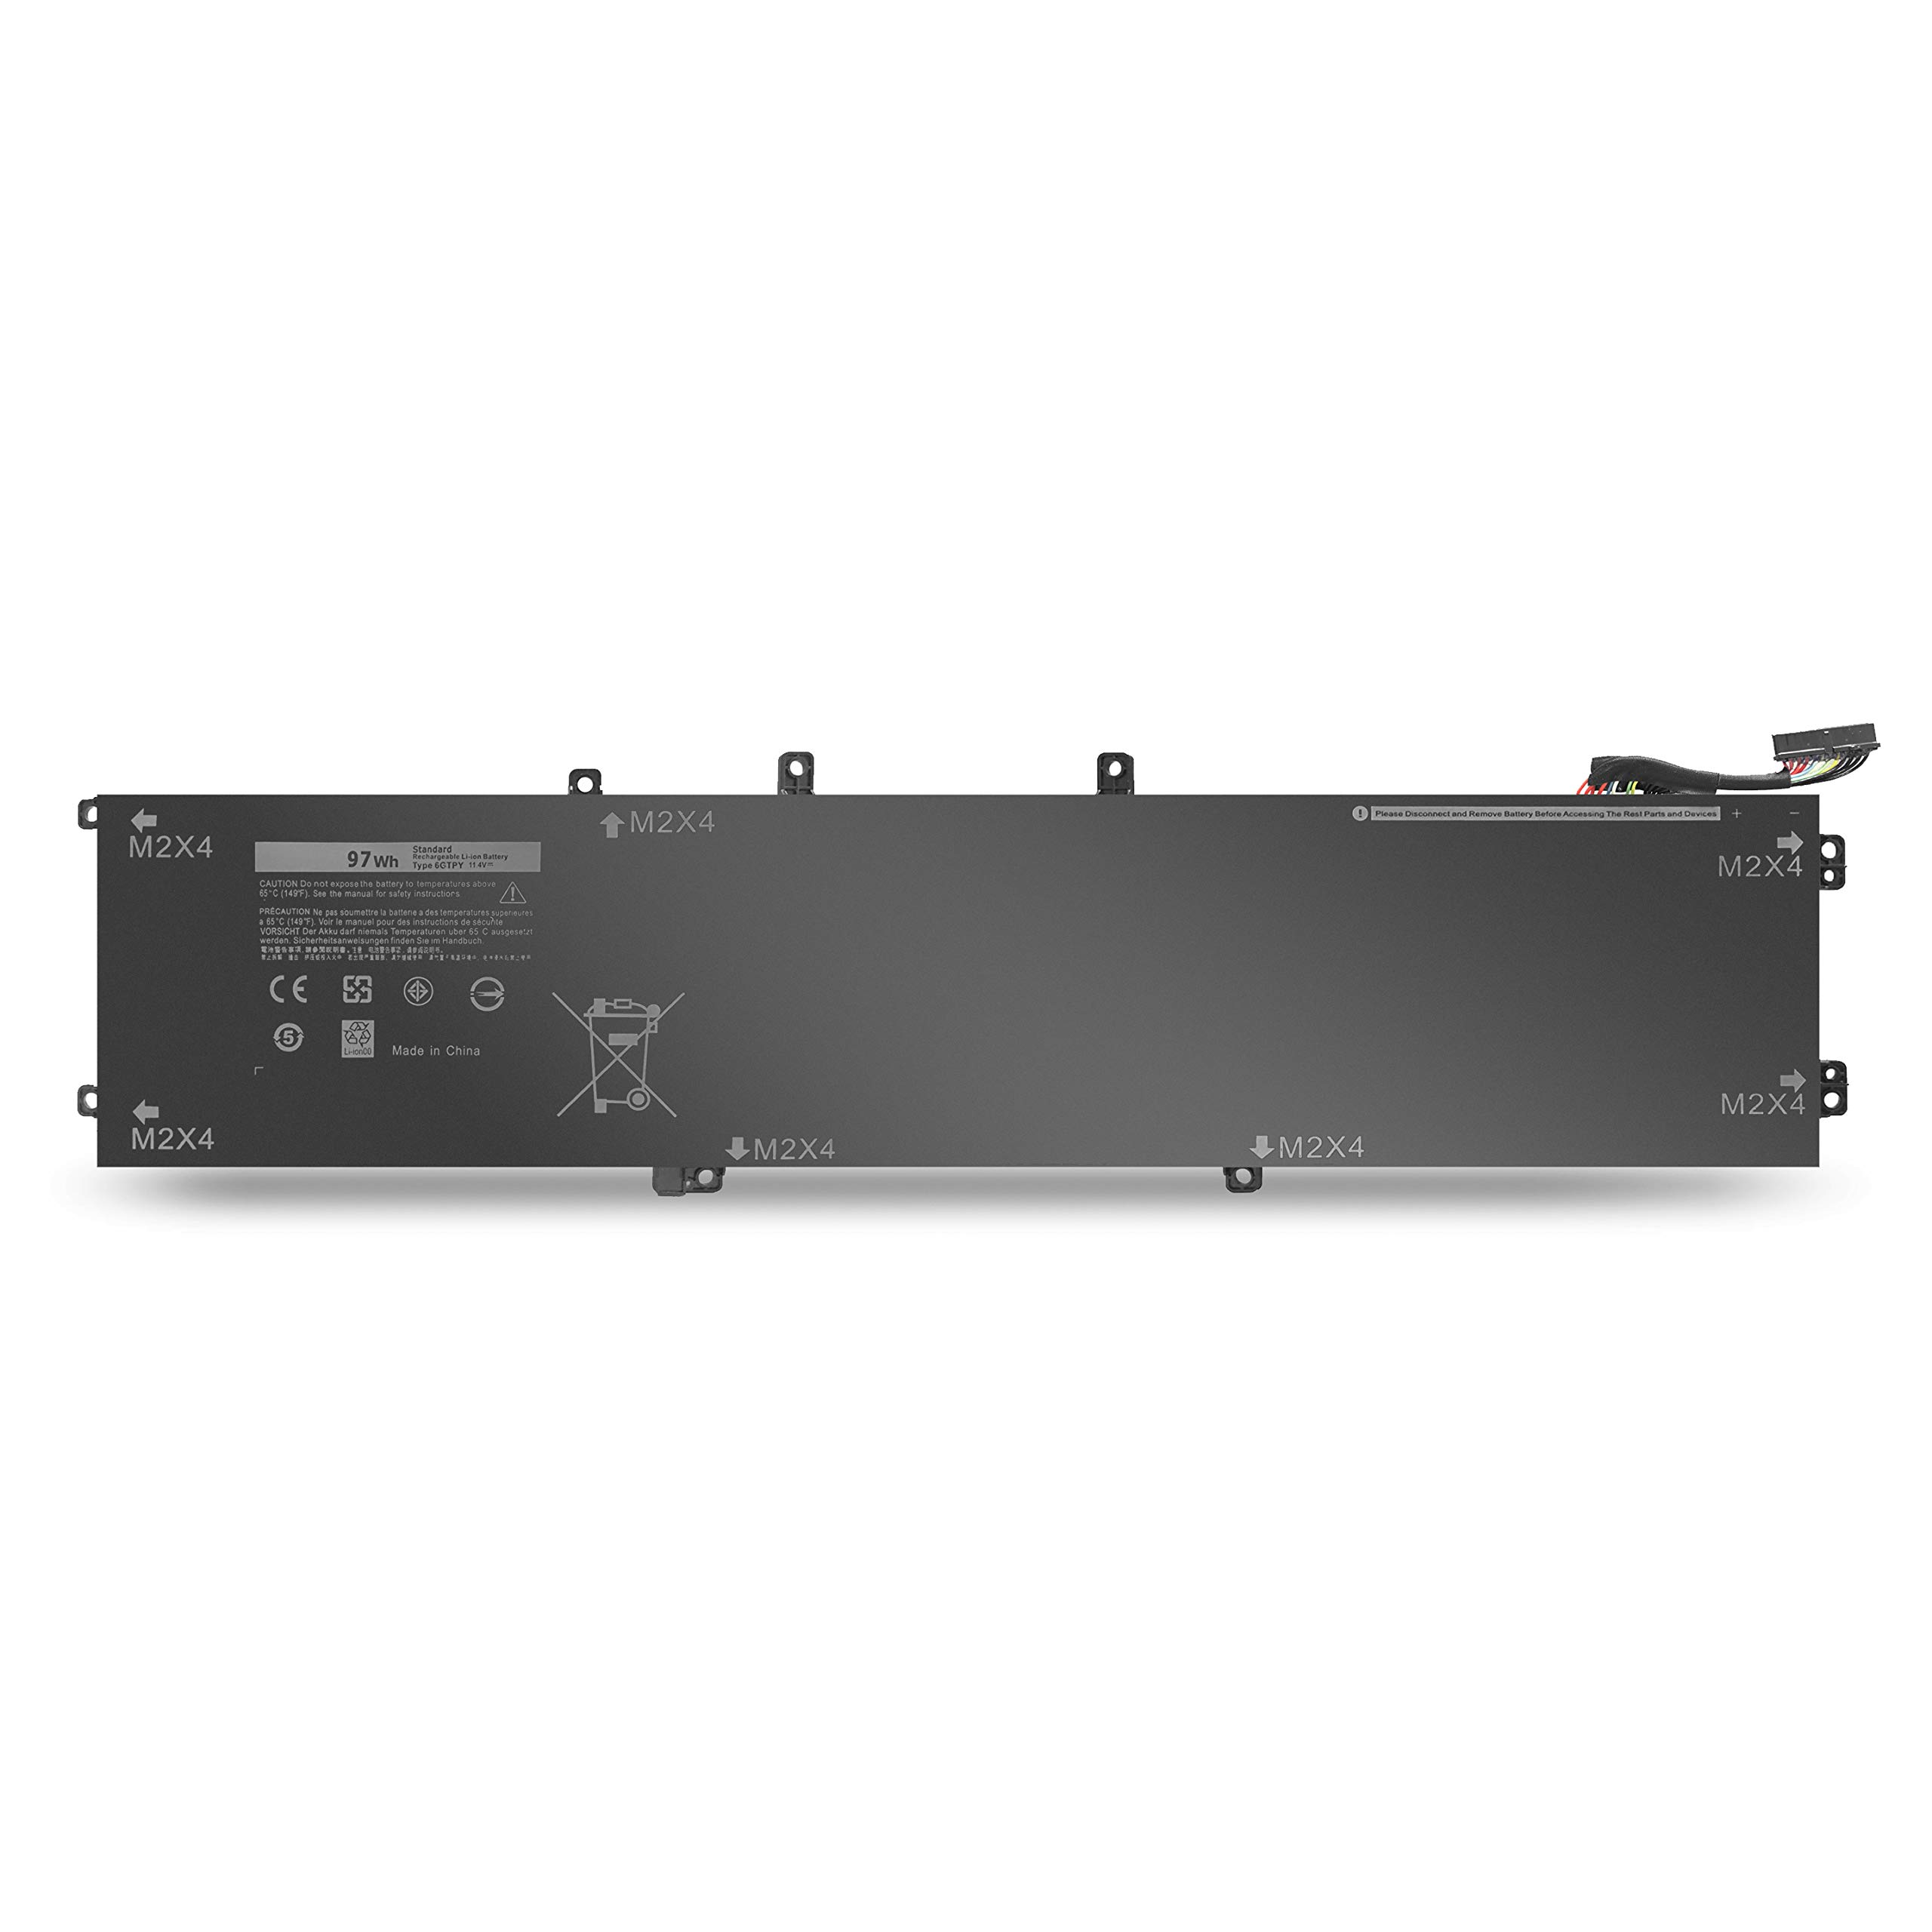 97Wh 6GTPY Battery for Dell XPS 15 9550 9560 9570 Precision 5510 5520 M5510 M5520 Laptop